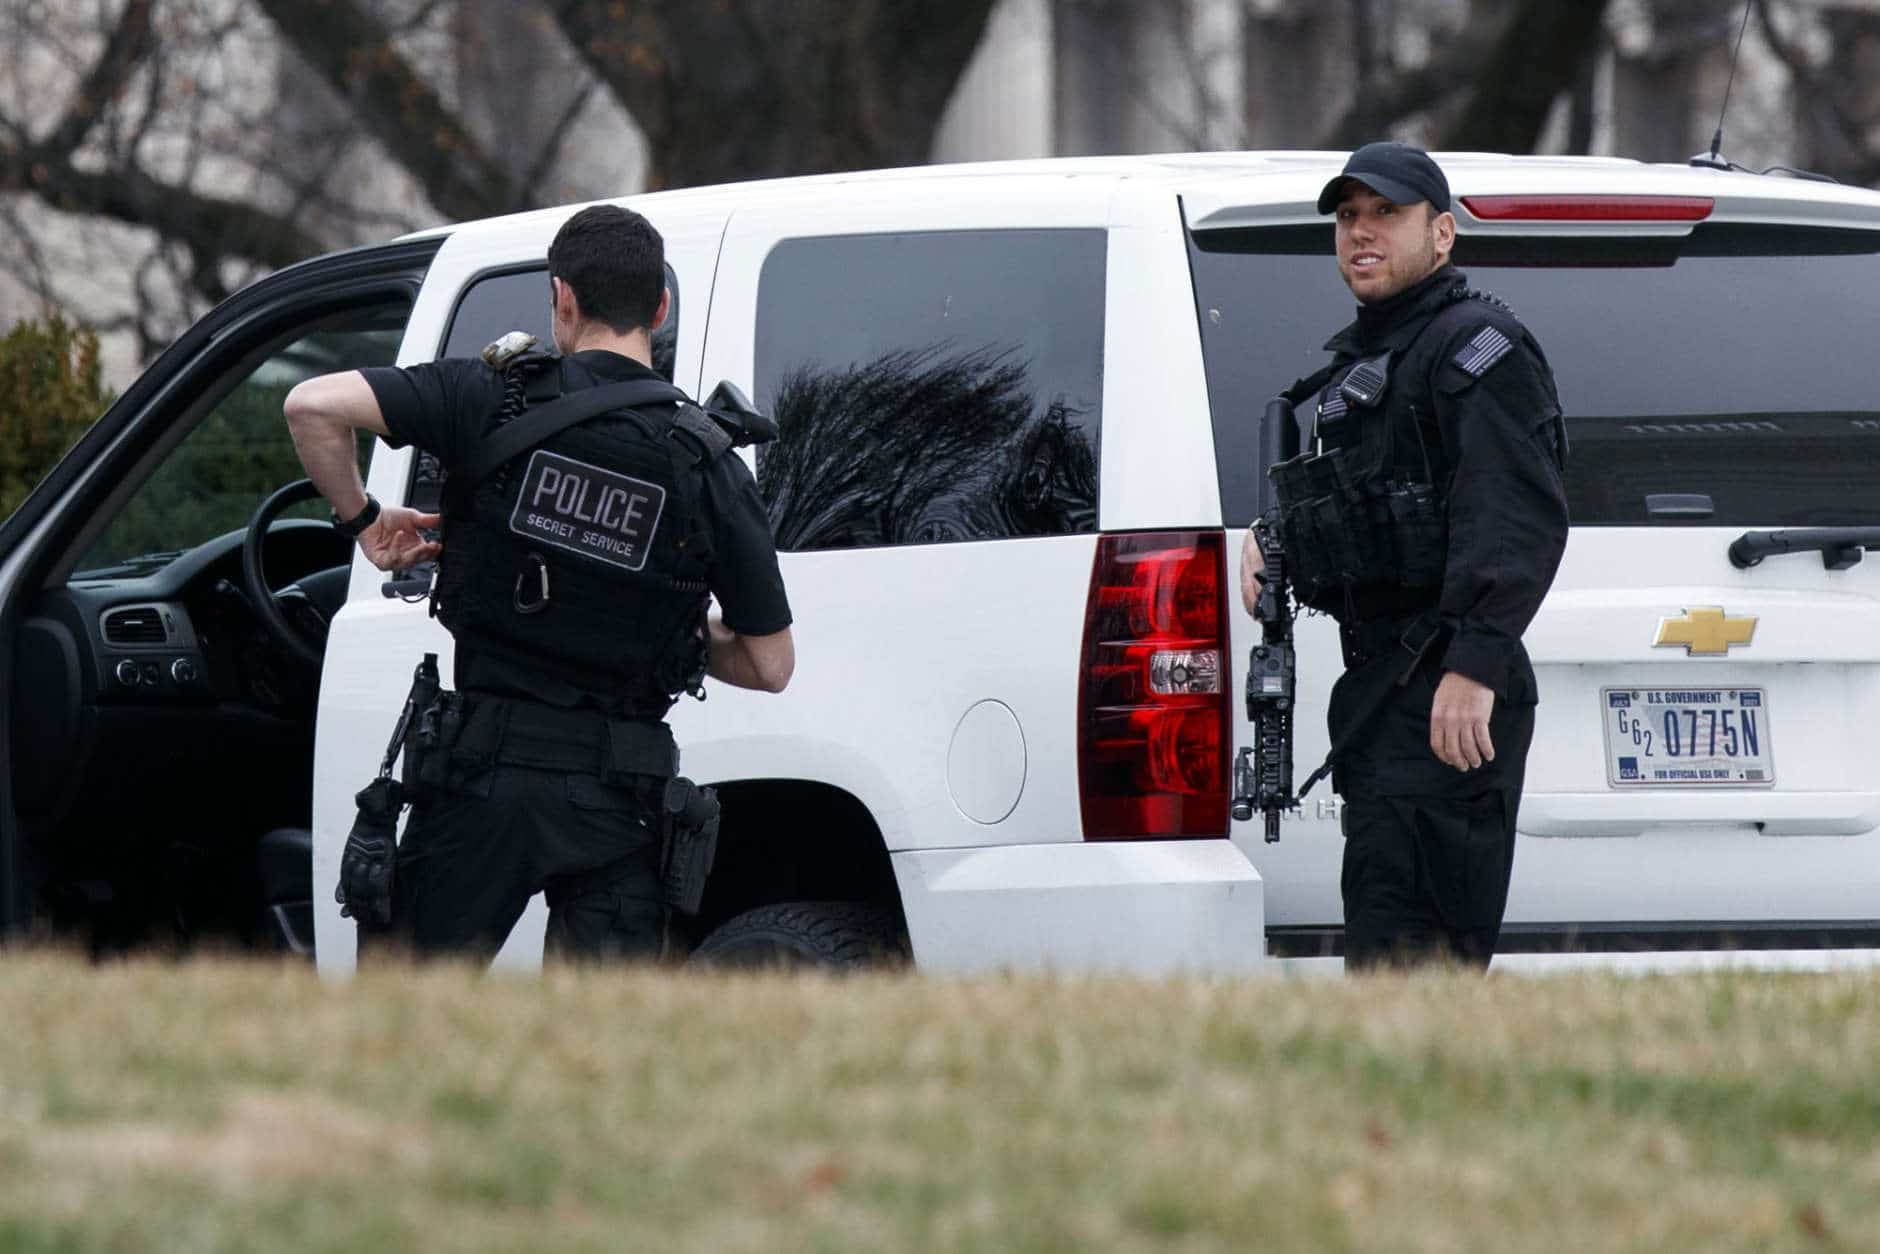 Secret Service officers stand on the North Lawn of the White House after a vehicle rammed a barrier near the White House, Friday, Feb. 23, 2018, in Washington. (AP Photo/Evan Vucci)